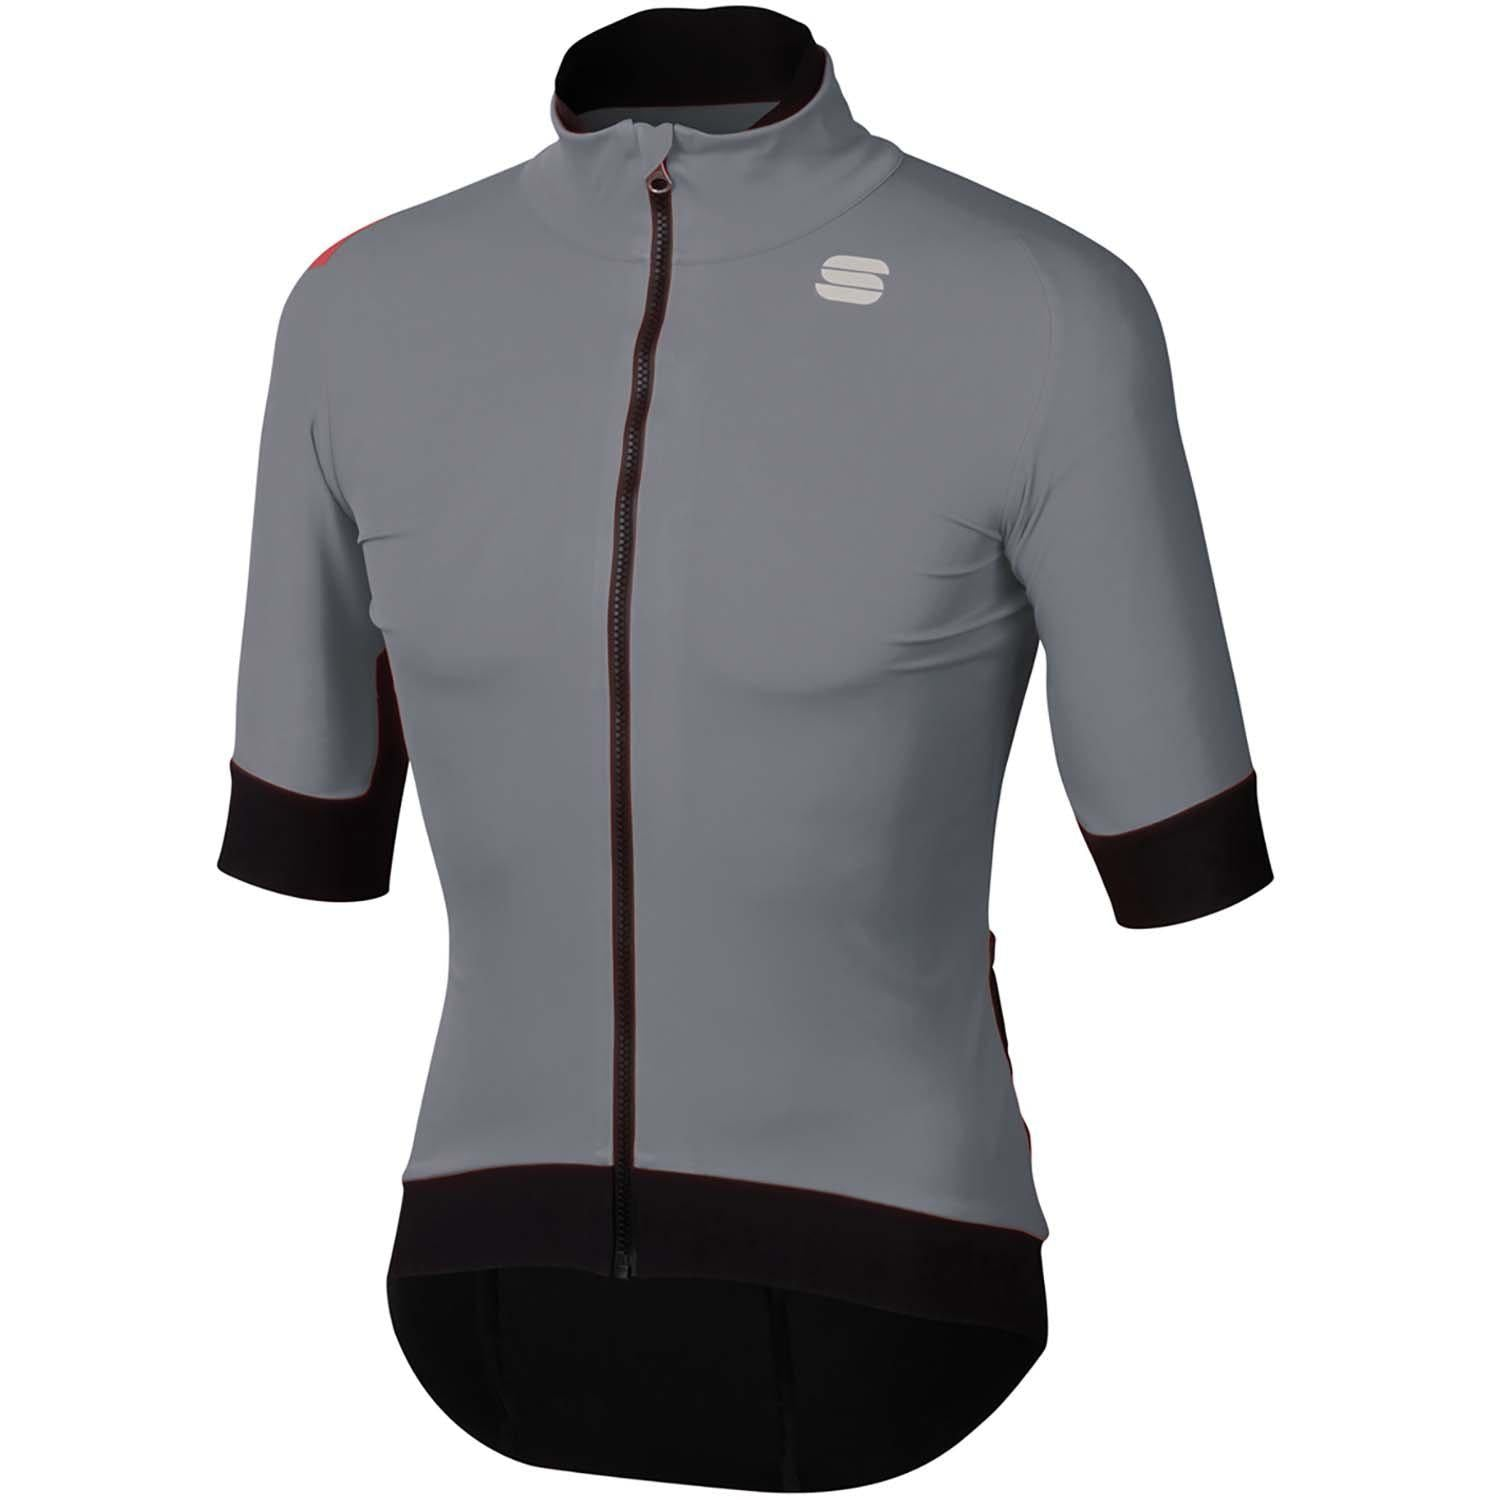 Sportful-Sportful Fiandre Pro Short Sleeve Jacket--saddleback-elite-performance-cycling